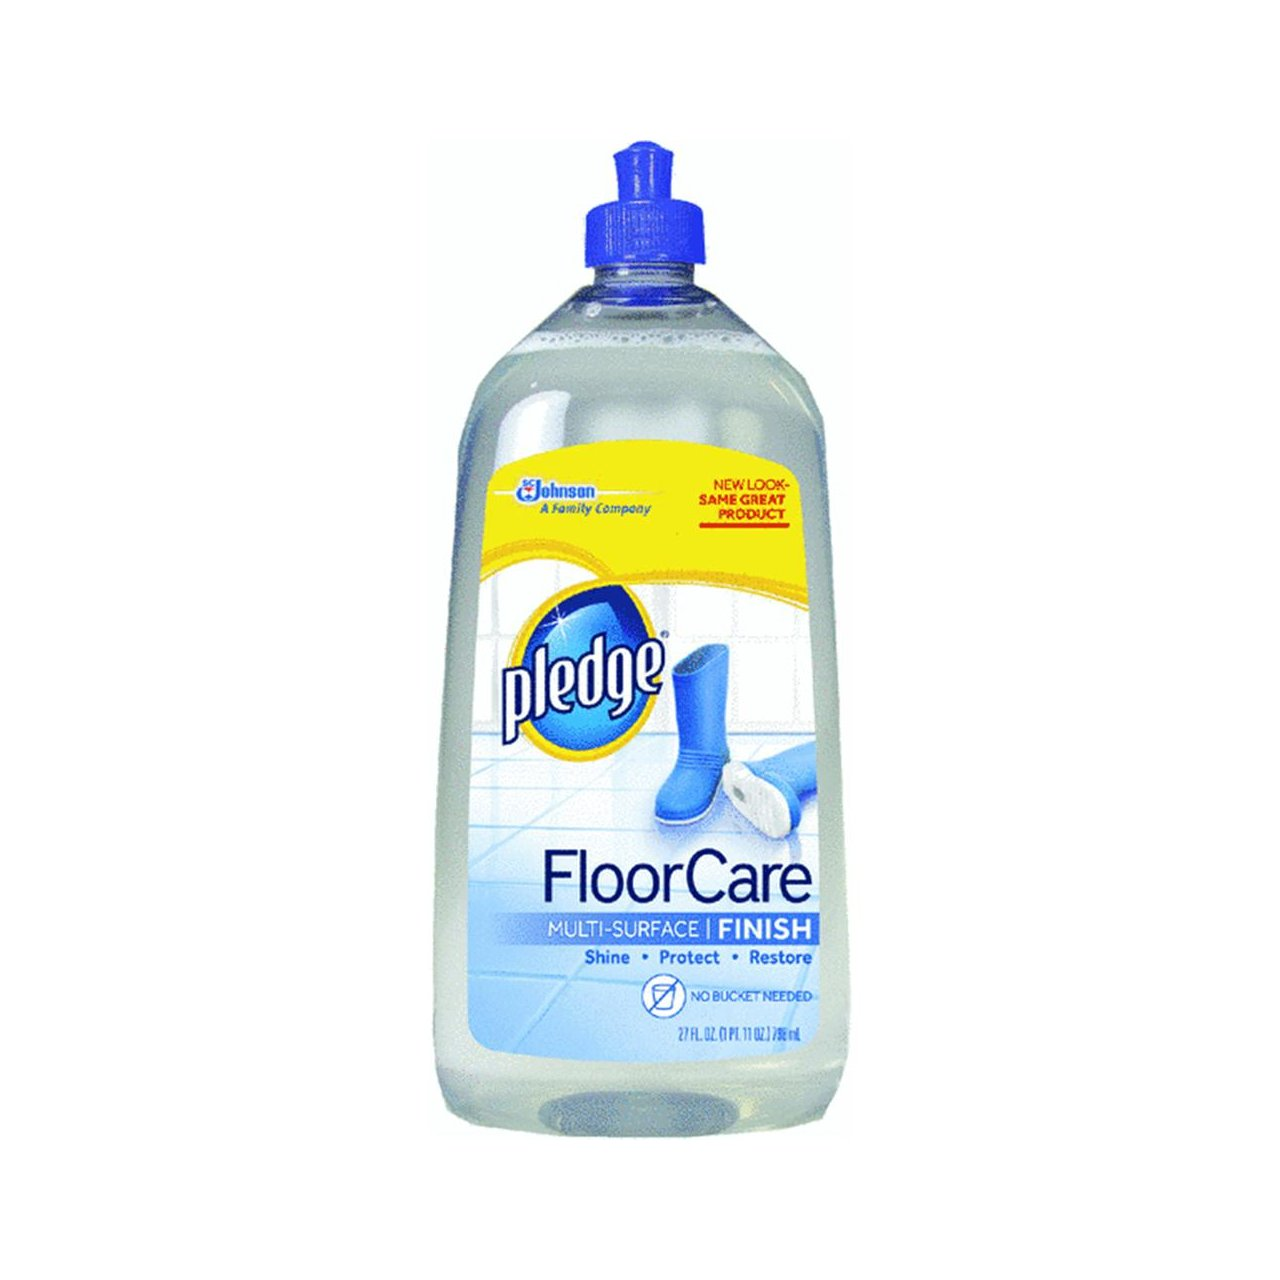 how to use pledge floor care finish